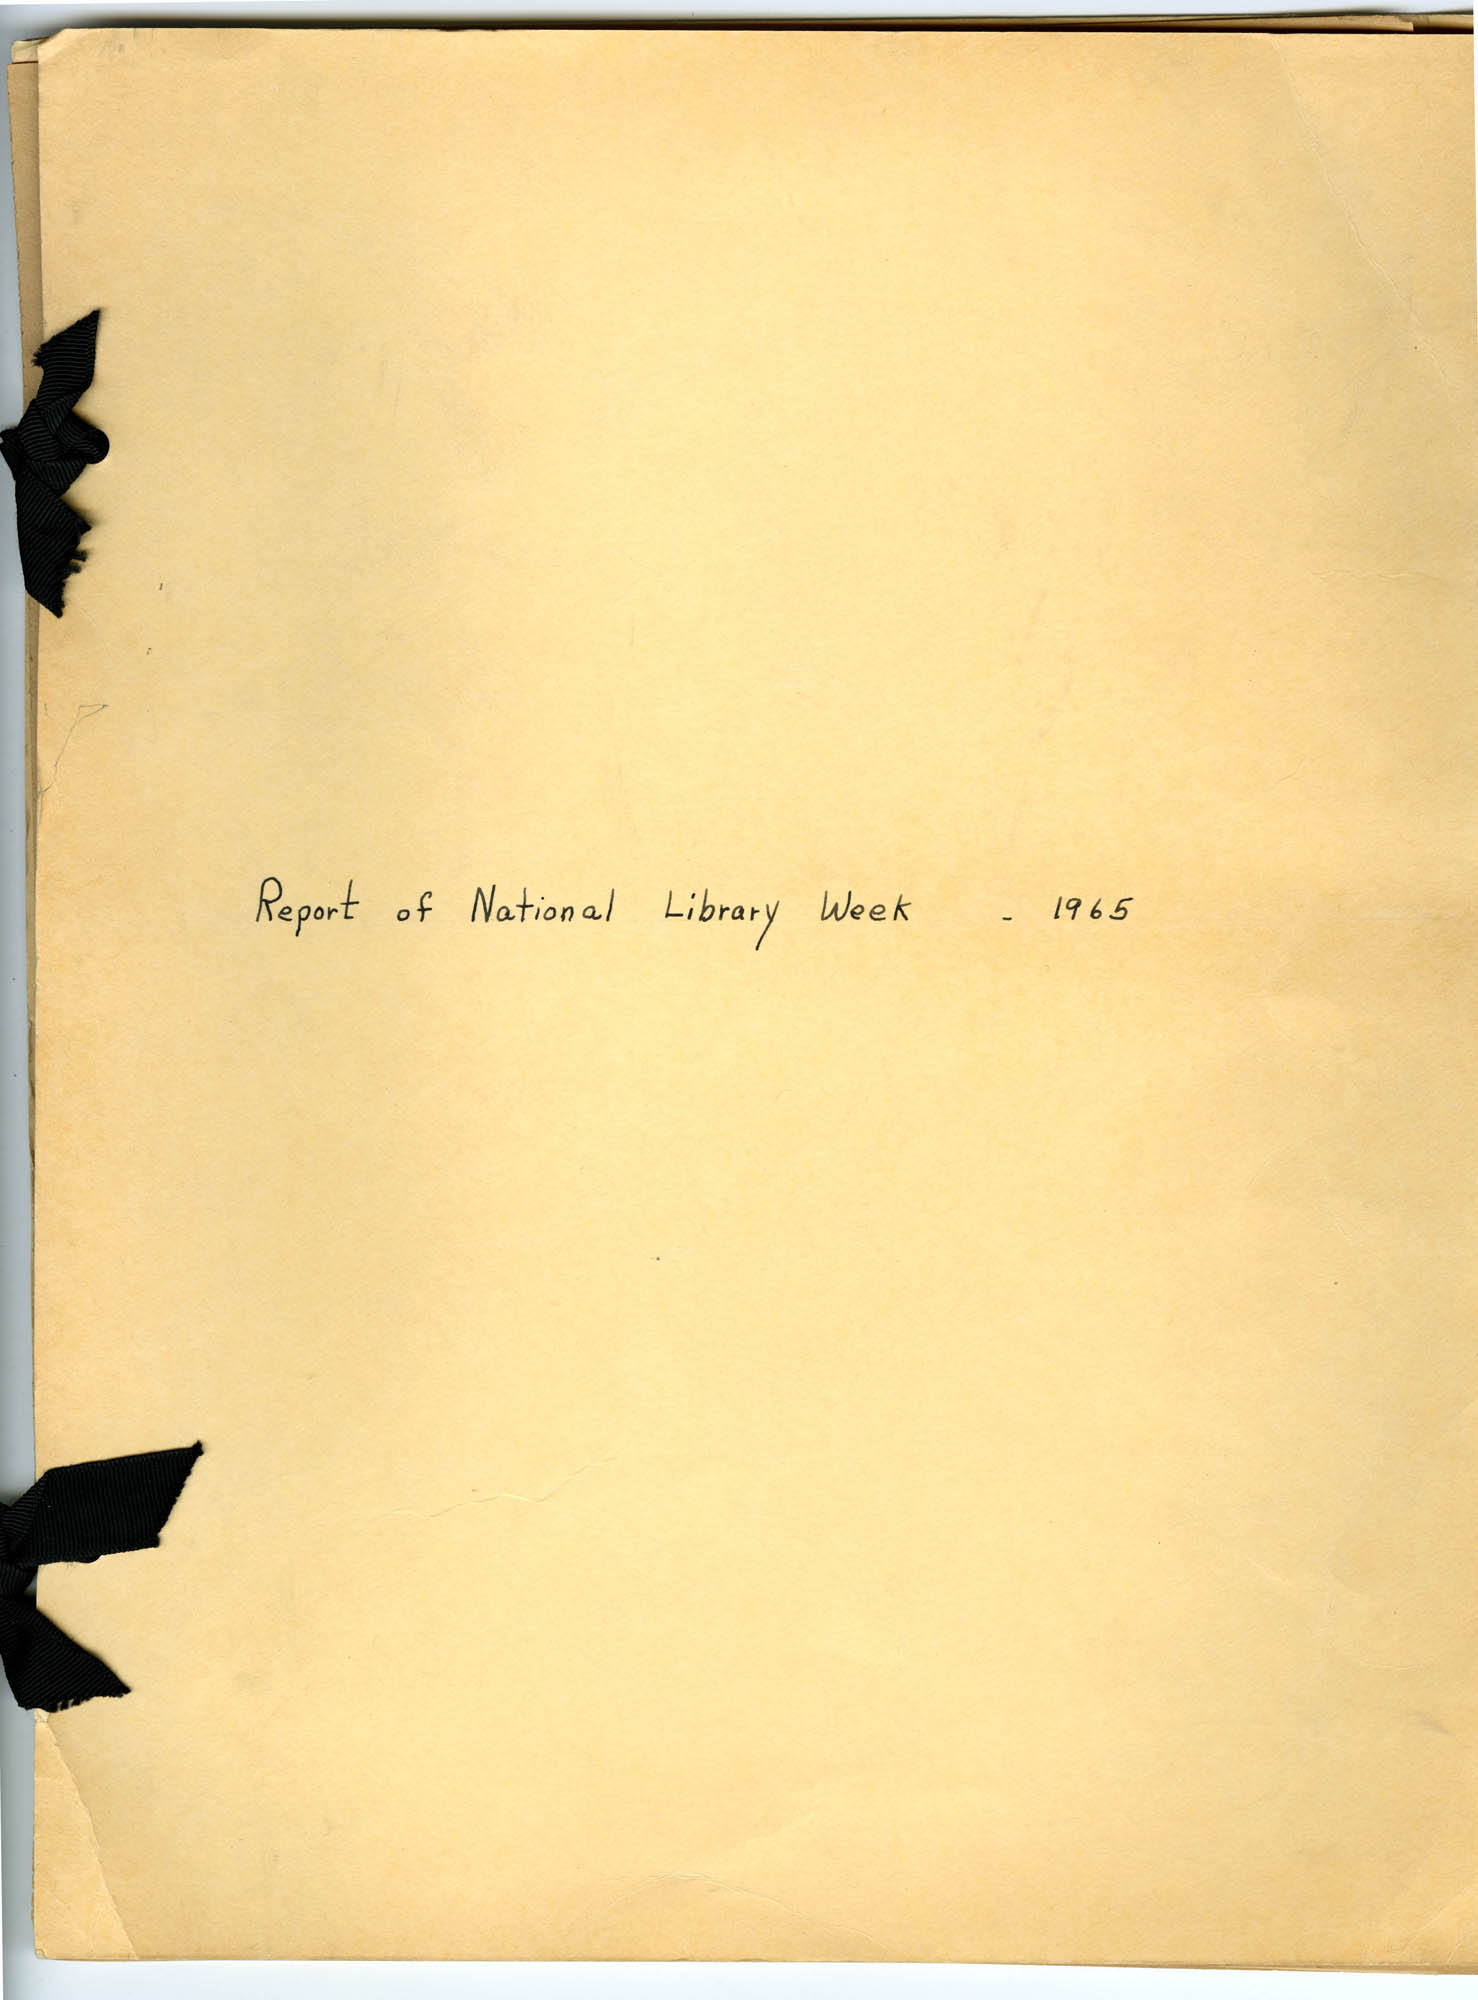 Report of National Library Week - 1965, Cover